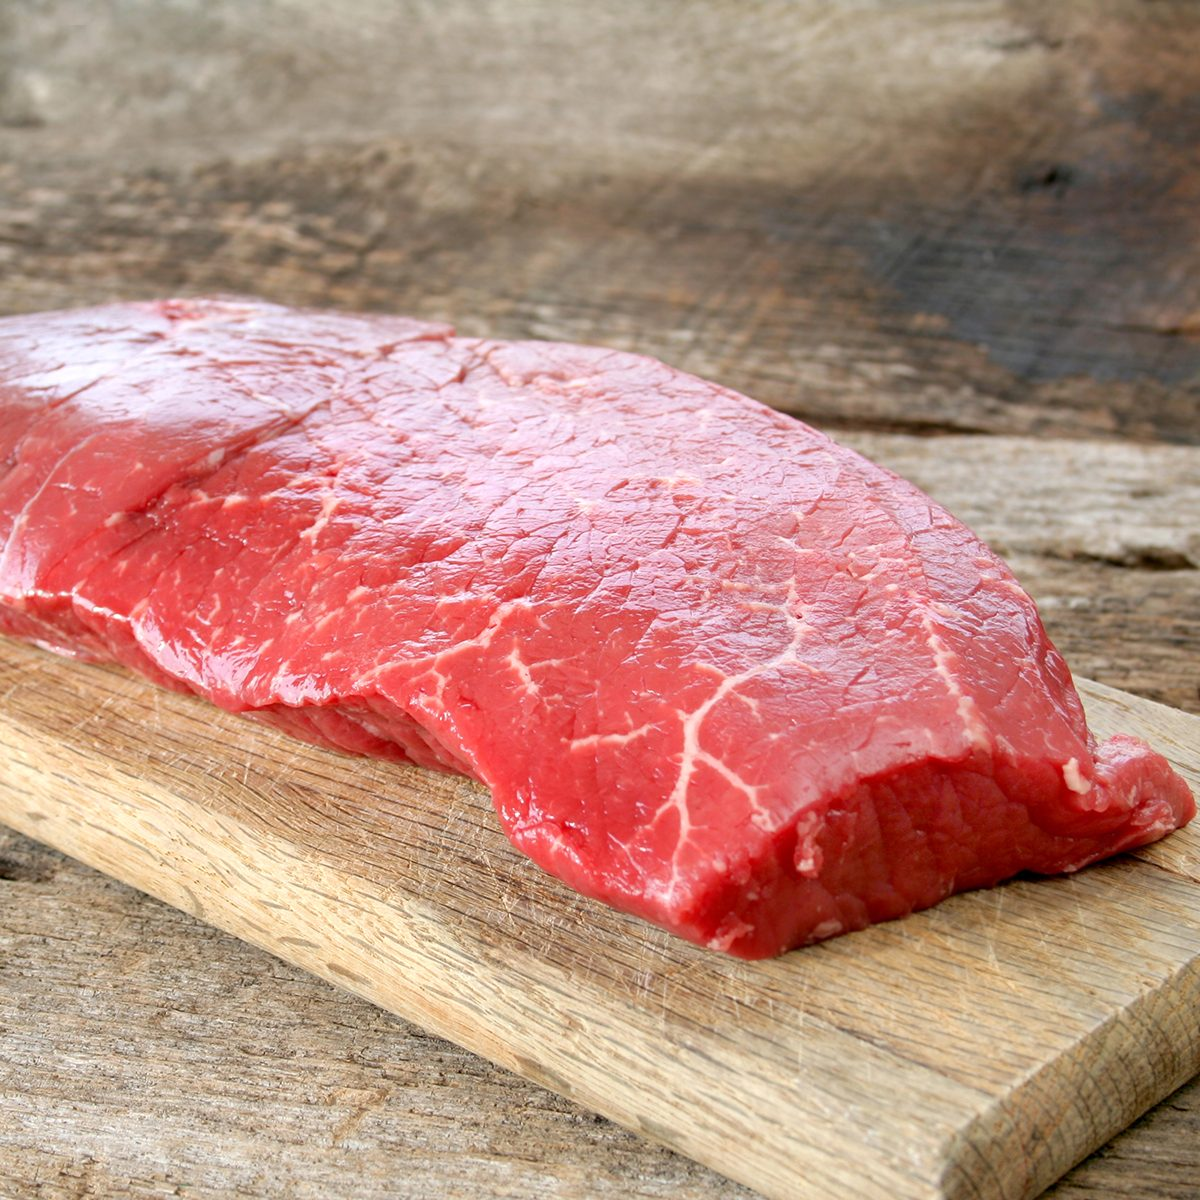 Raw beef on a cutting board ready to be cooked.